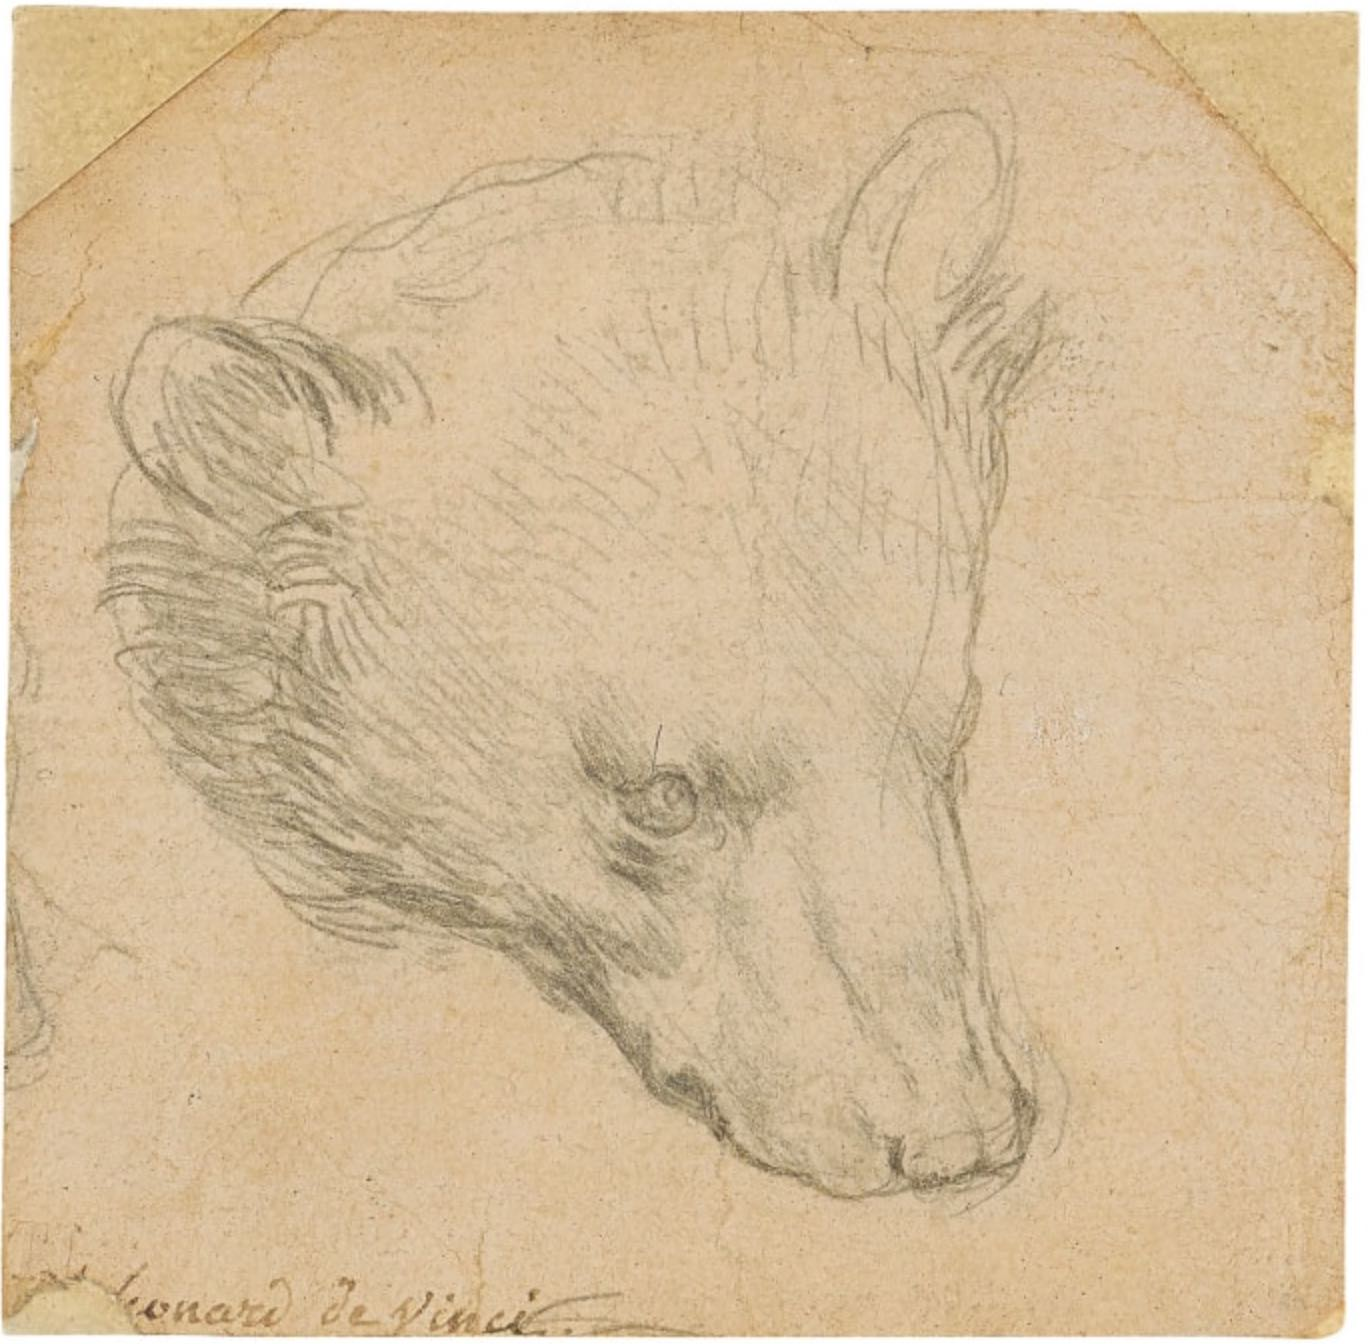 This small Leonardo da Vinci sketch of a bear expected to sell for $16 million